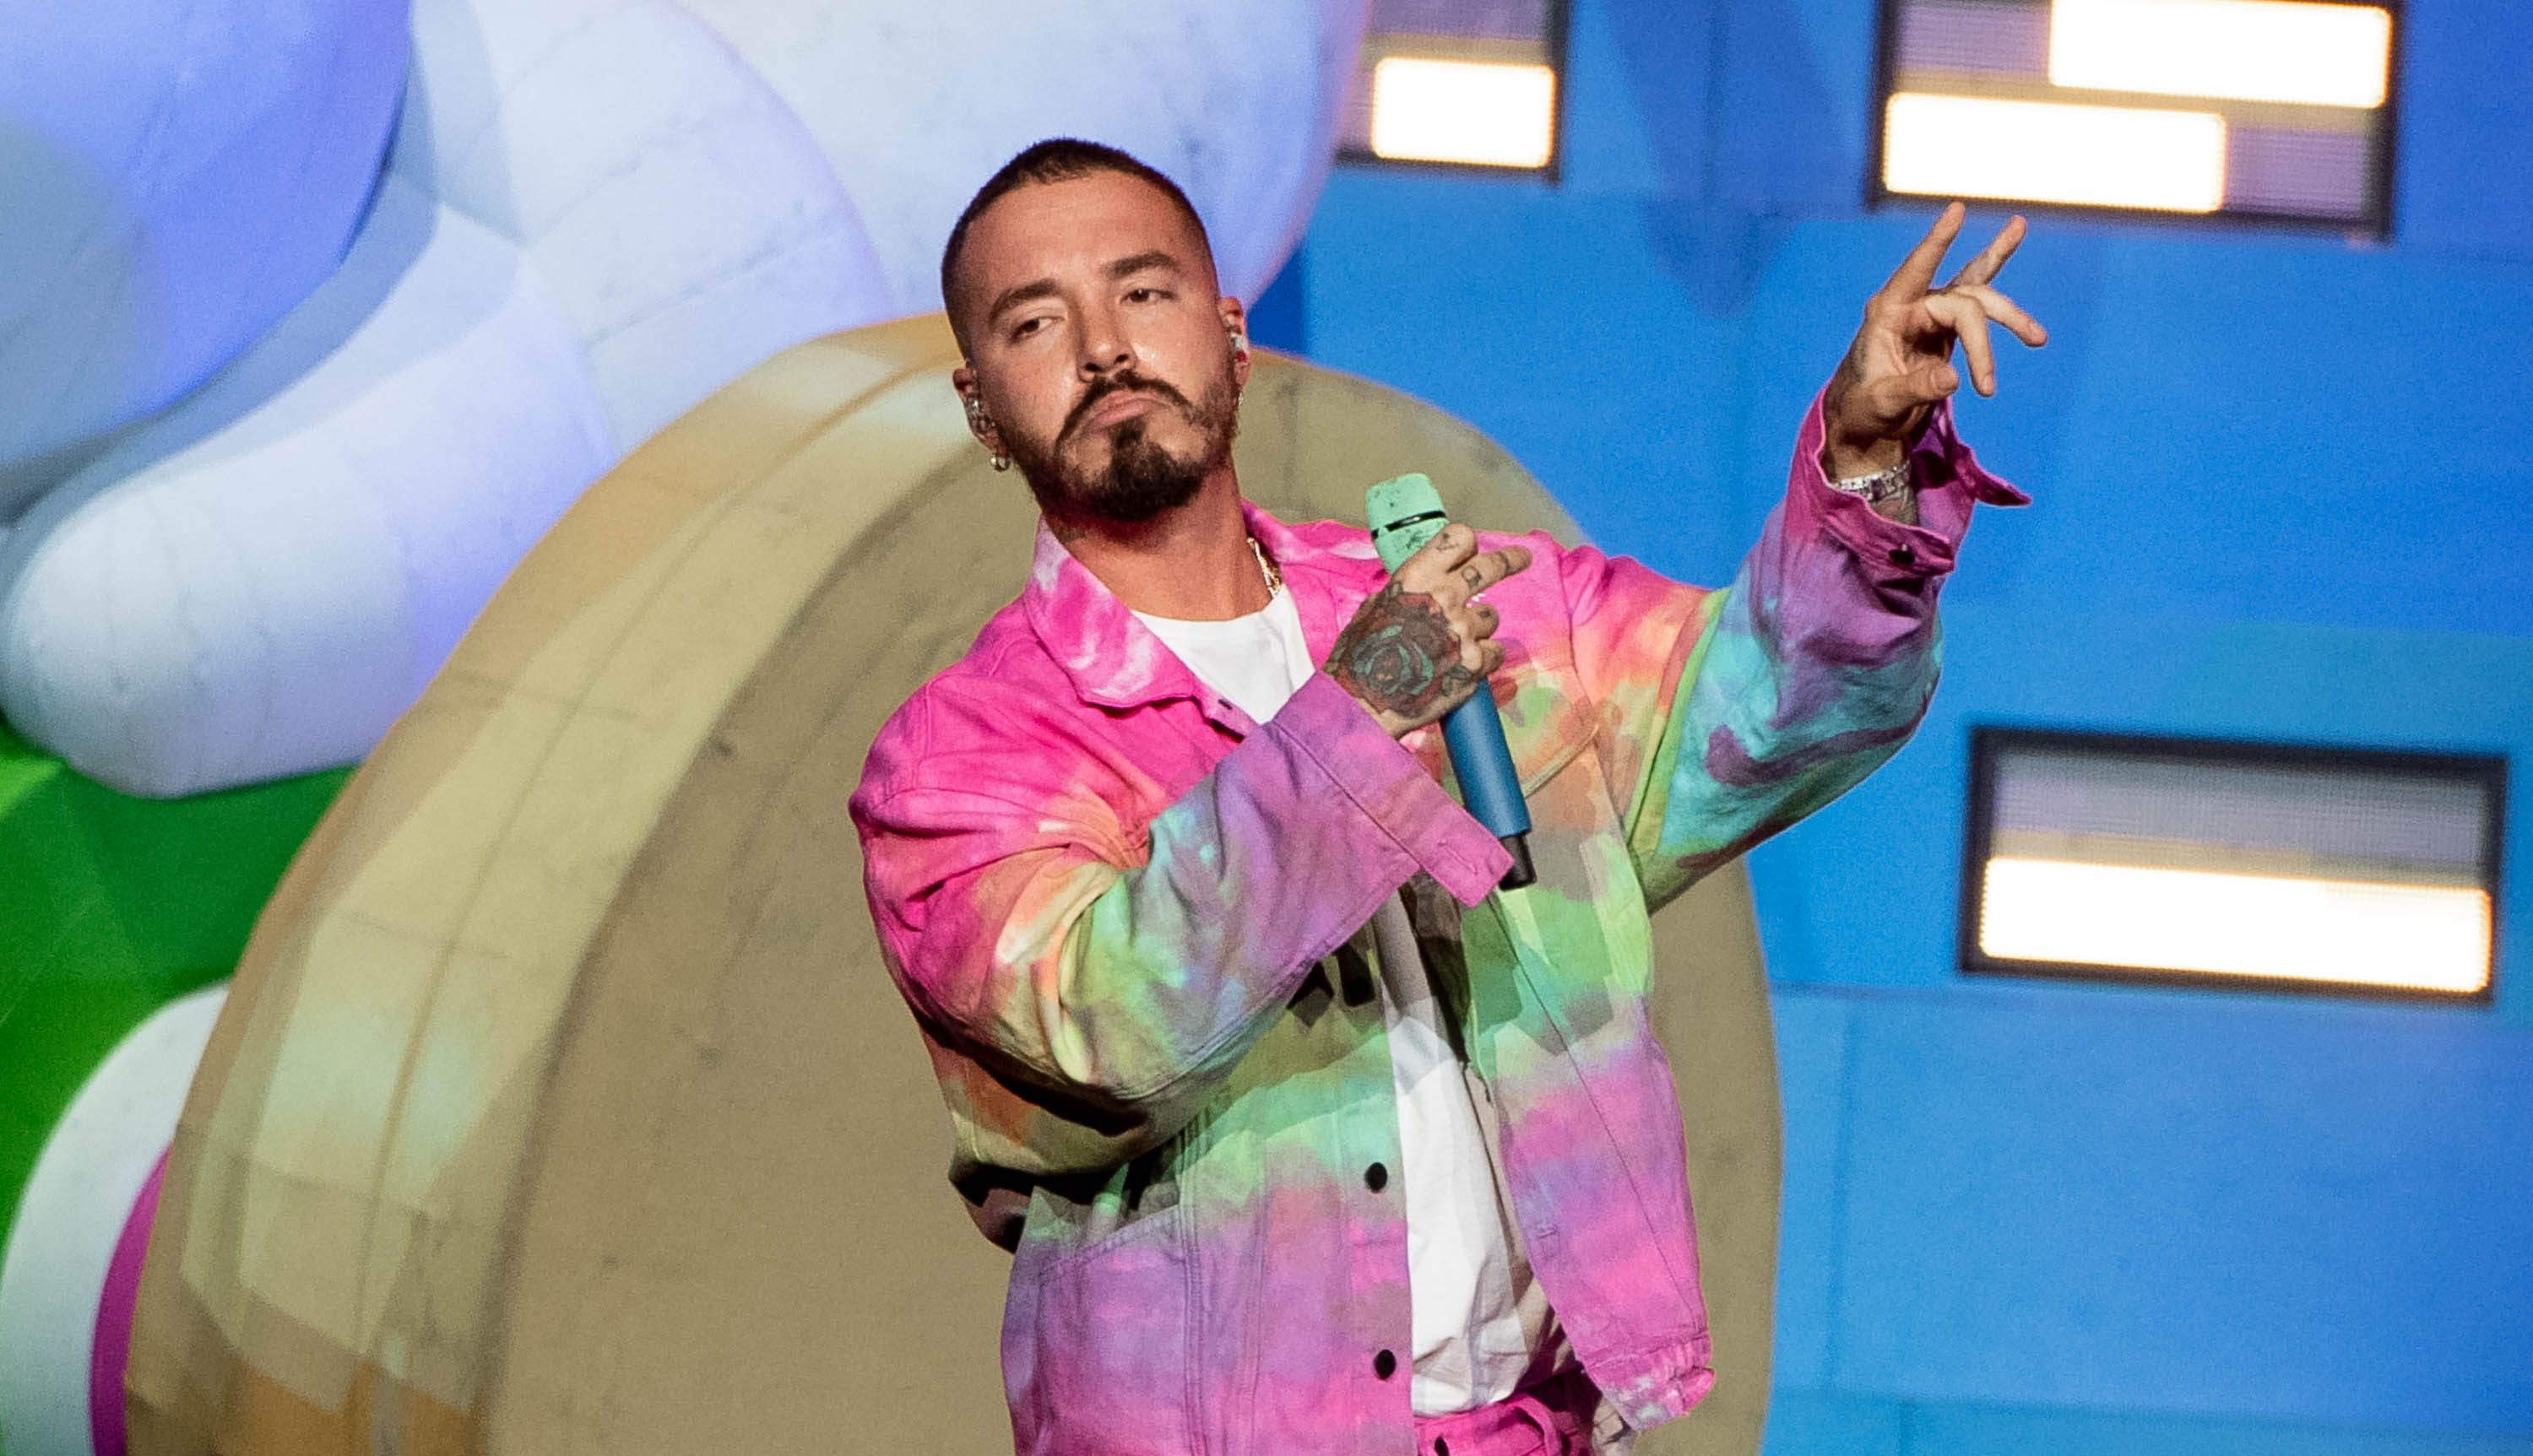 Balvin's Jordans Release Is Postponed, but He Dropped a Murakami Collab to Tide You Over